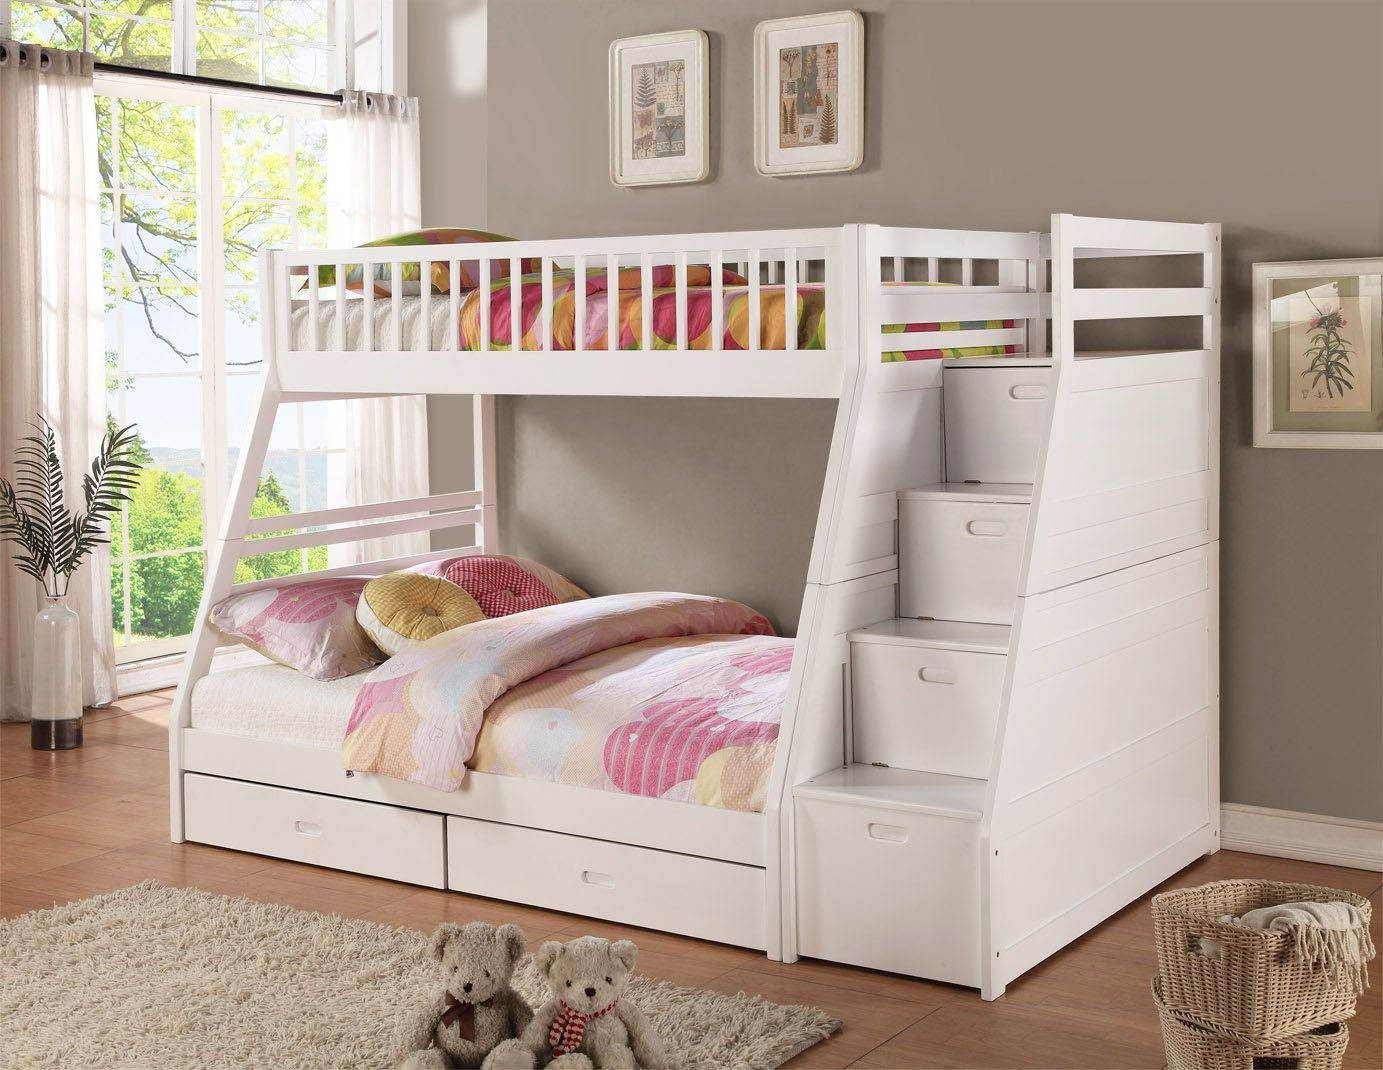 White Bunk Beds With Practical Stairs And Storage Bunk Beds With